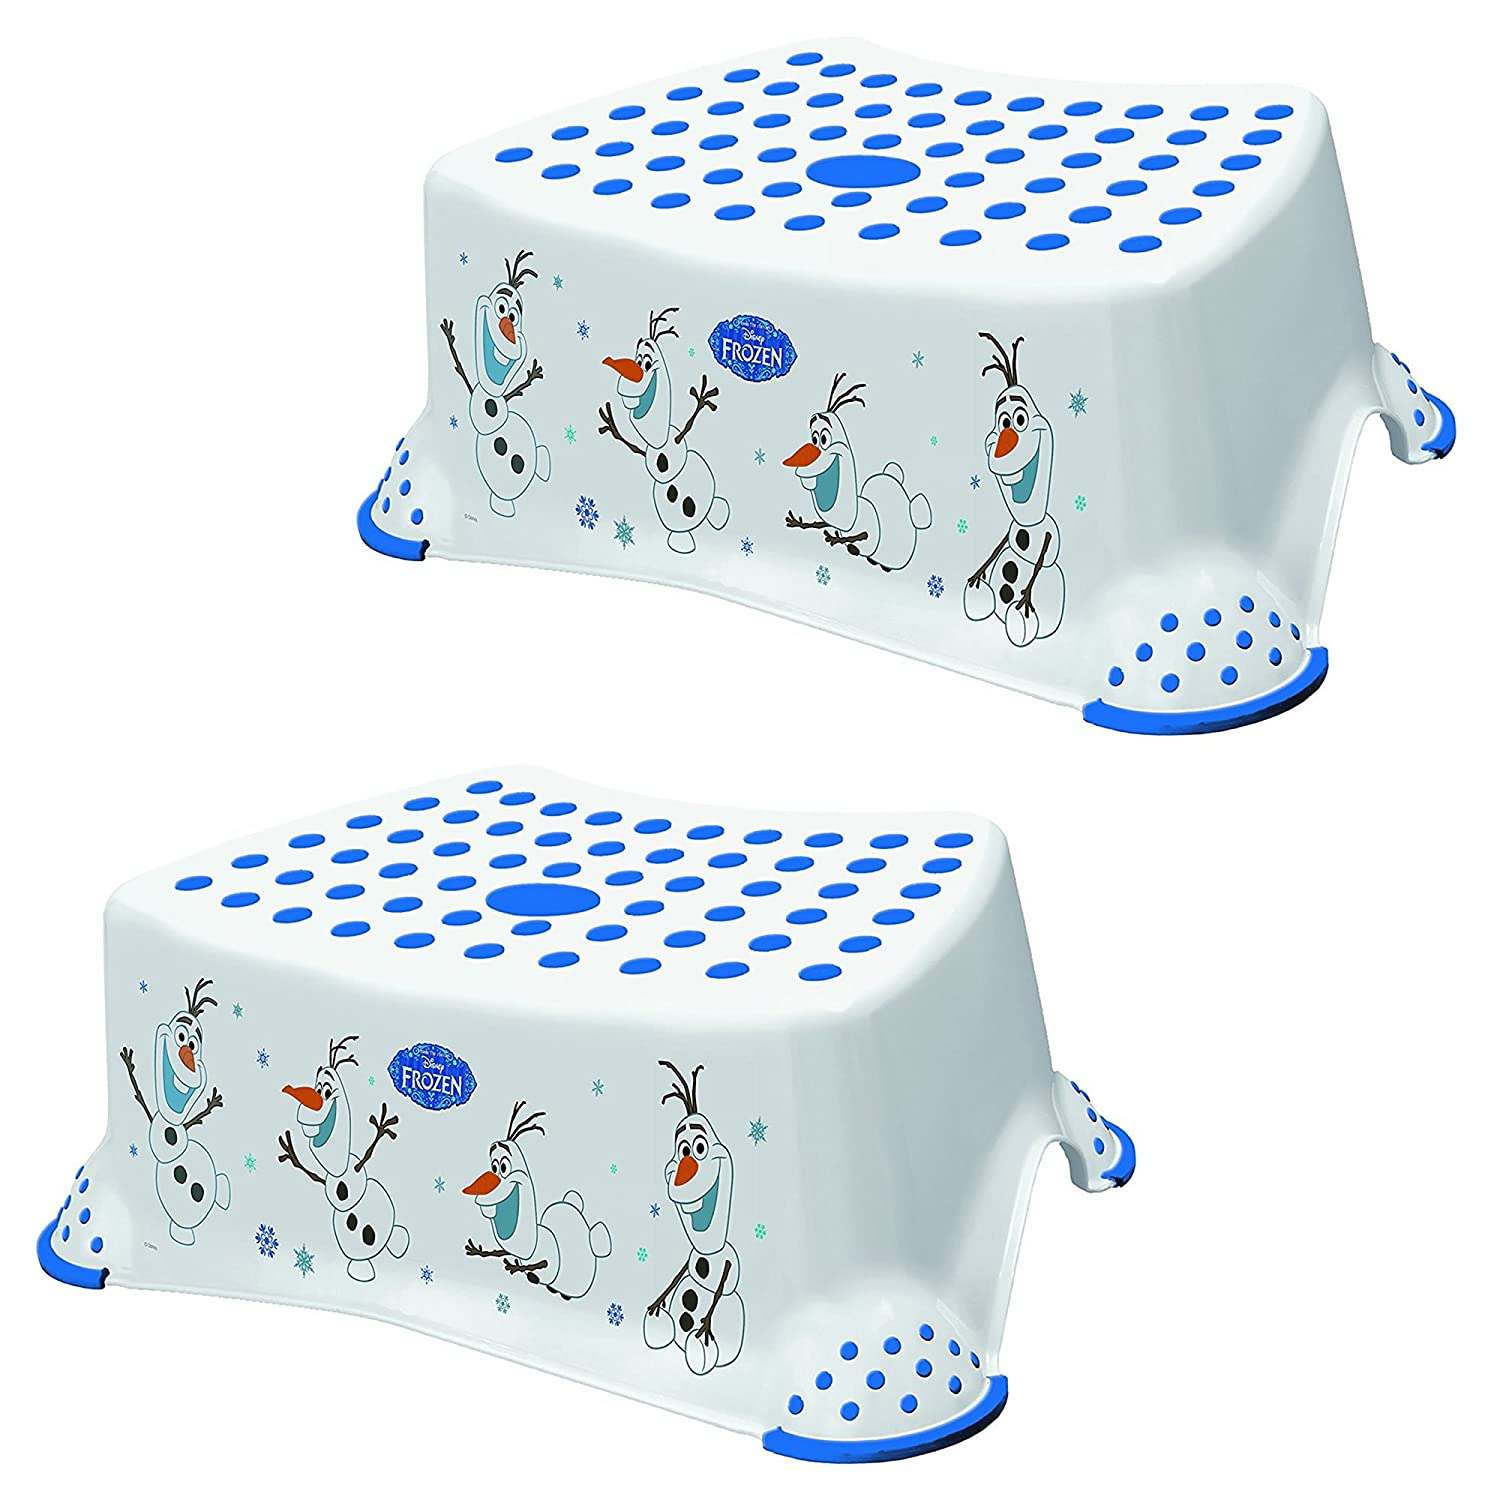 Disney Frozen Olaf Baby Child & Toddler Step Stool TWO PACK 14cm/5.5 White/Purple Strong Plastic 100kg Capacity Non Slip/Skid Safety Rubber Surface & Feet for Toilet/Potty Training Lightweight Portable